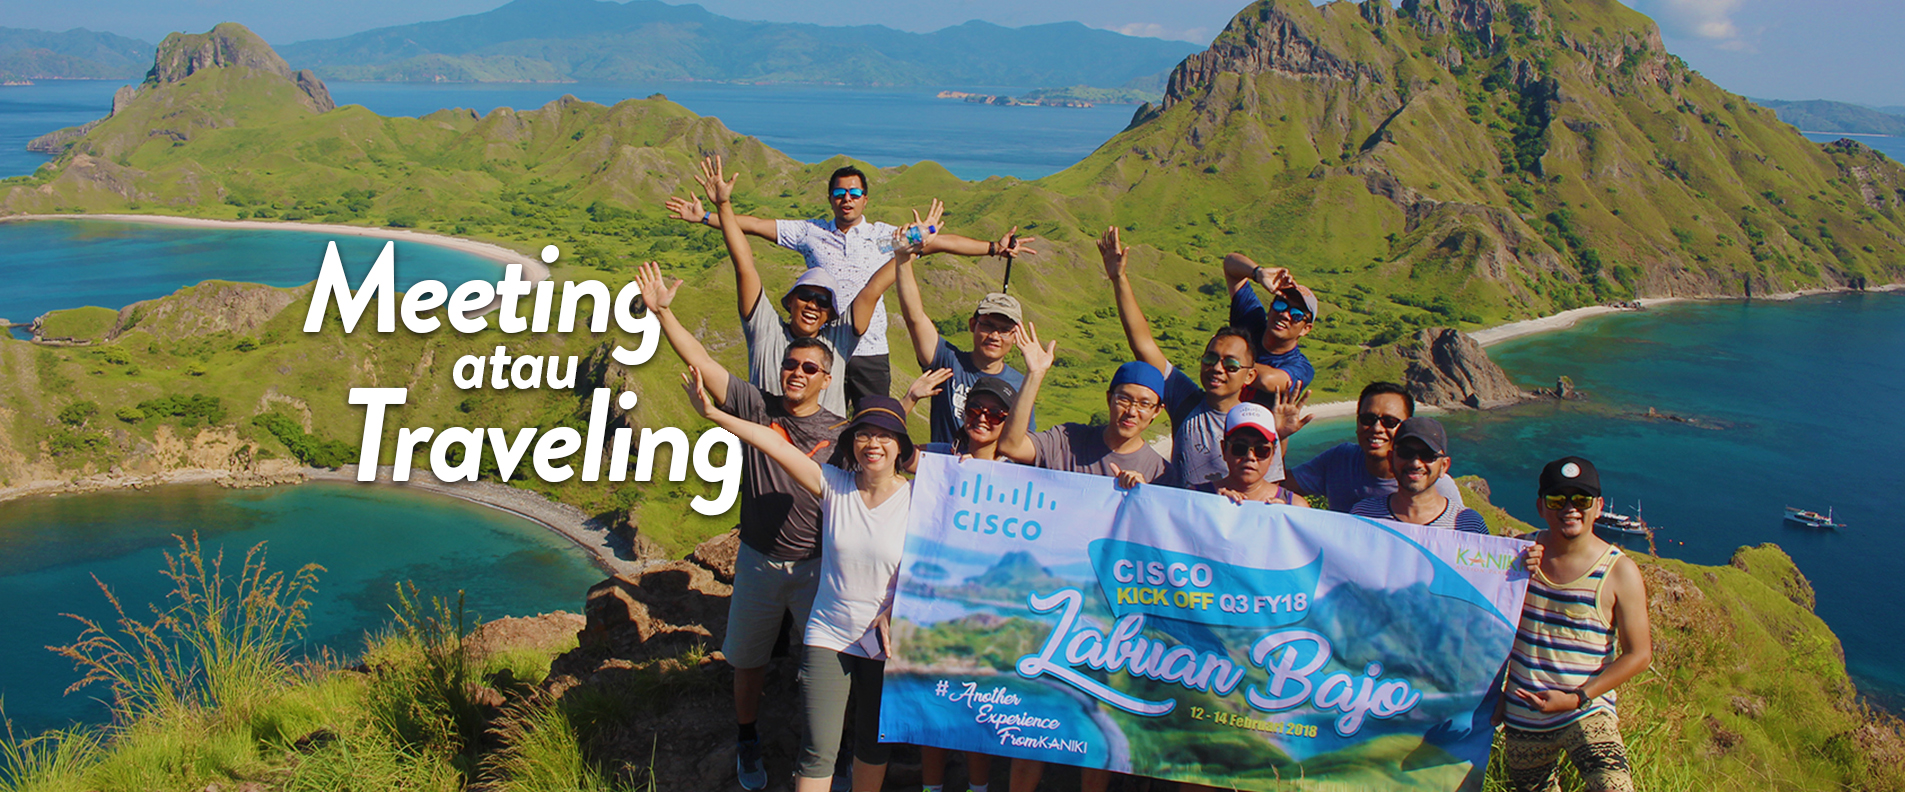 team building-meeting-labuan bajo-kanki